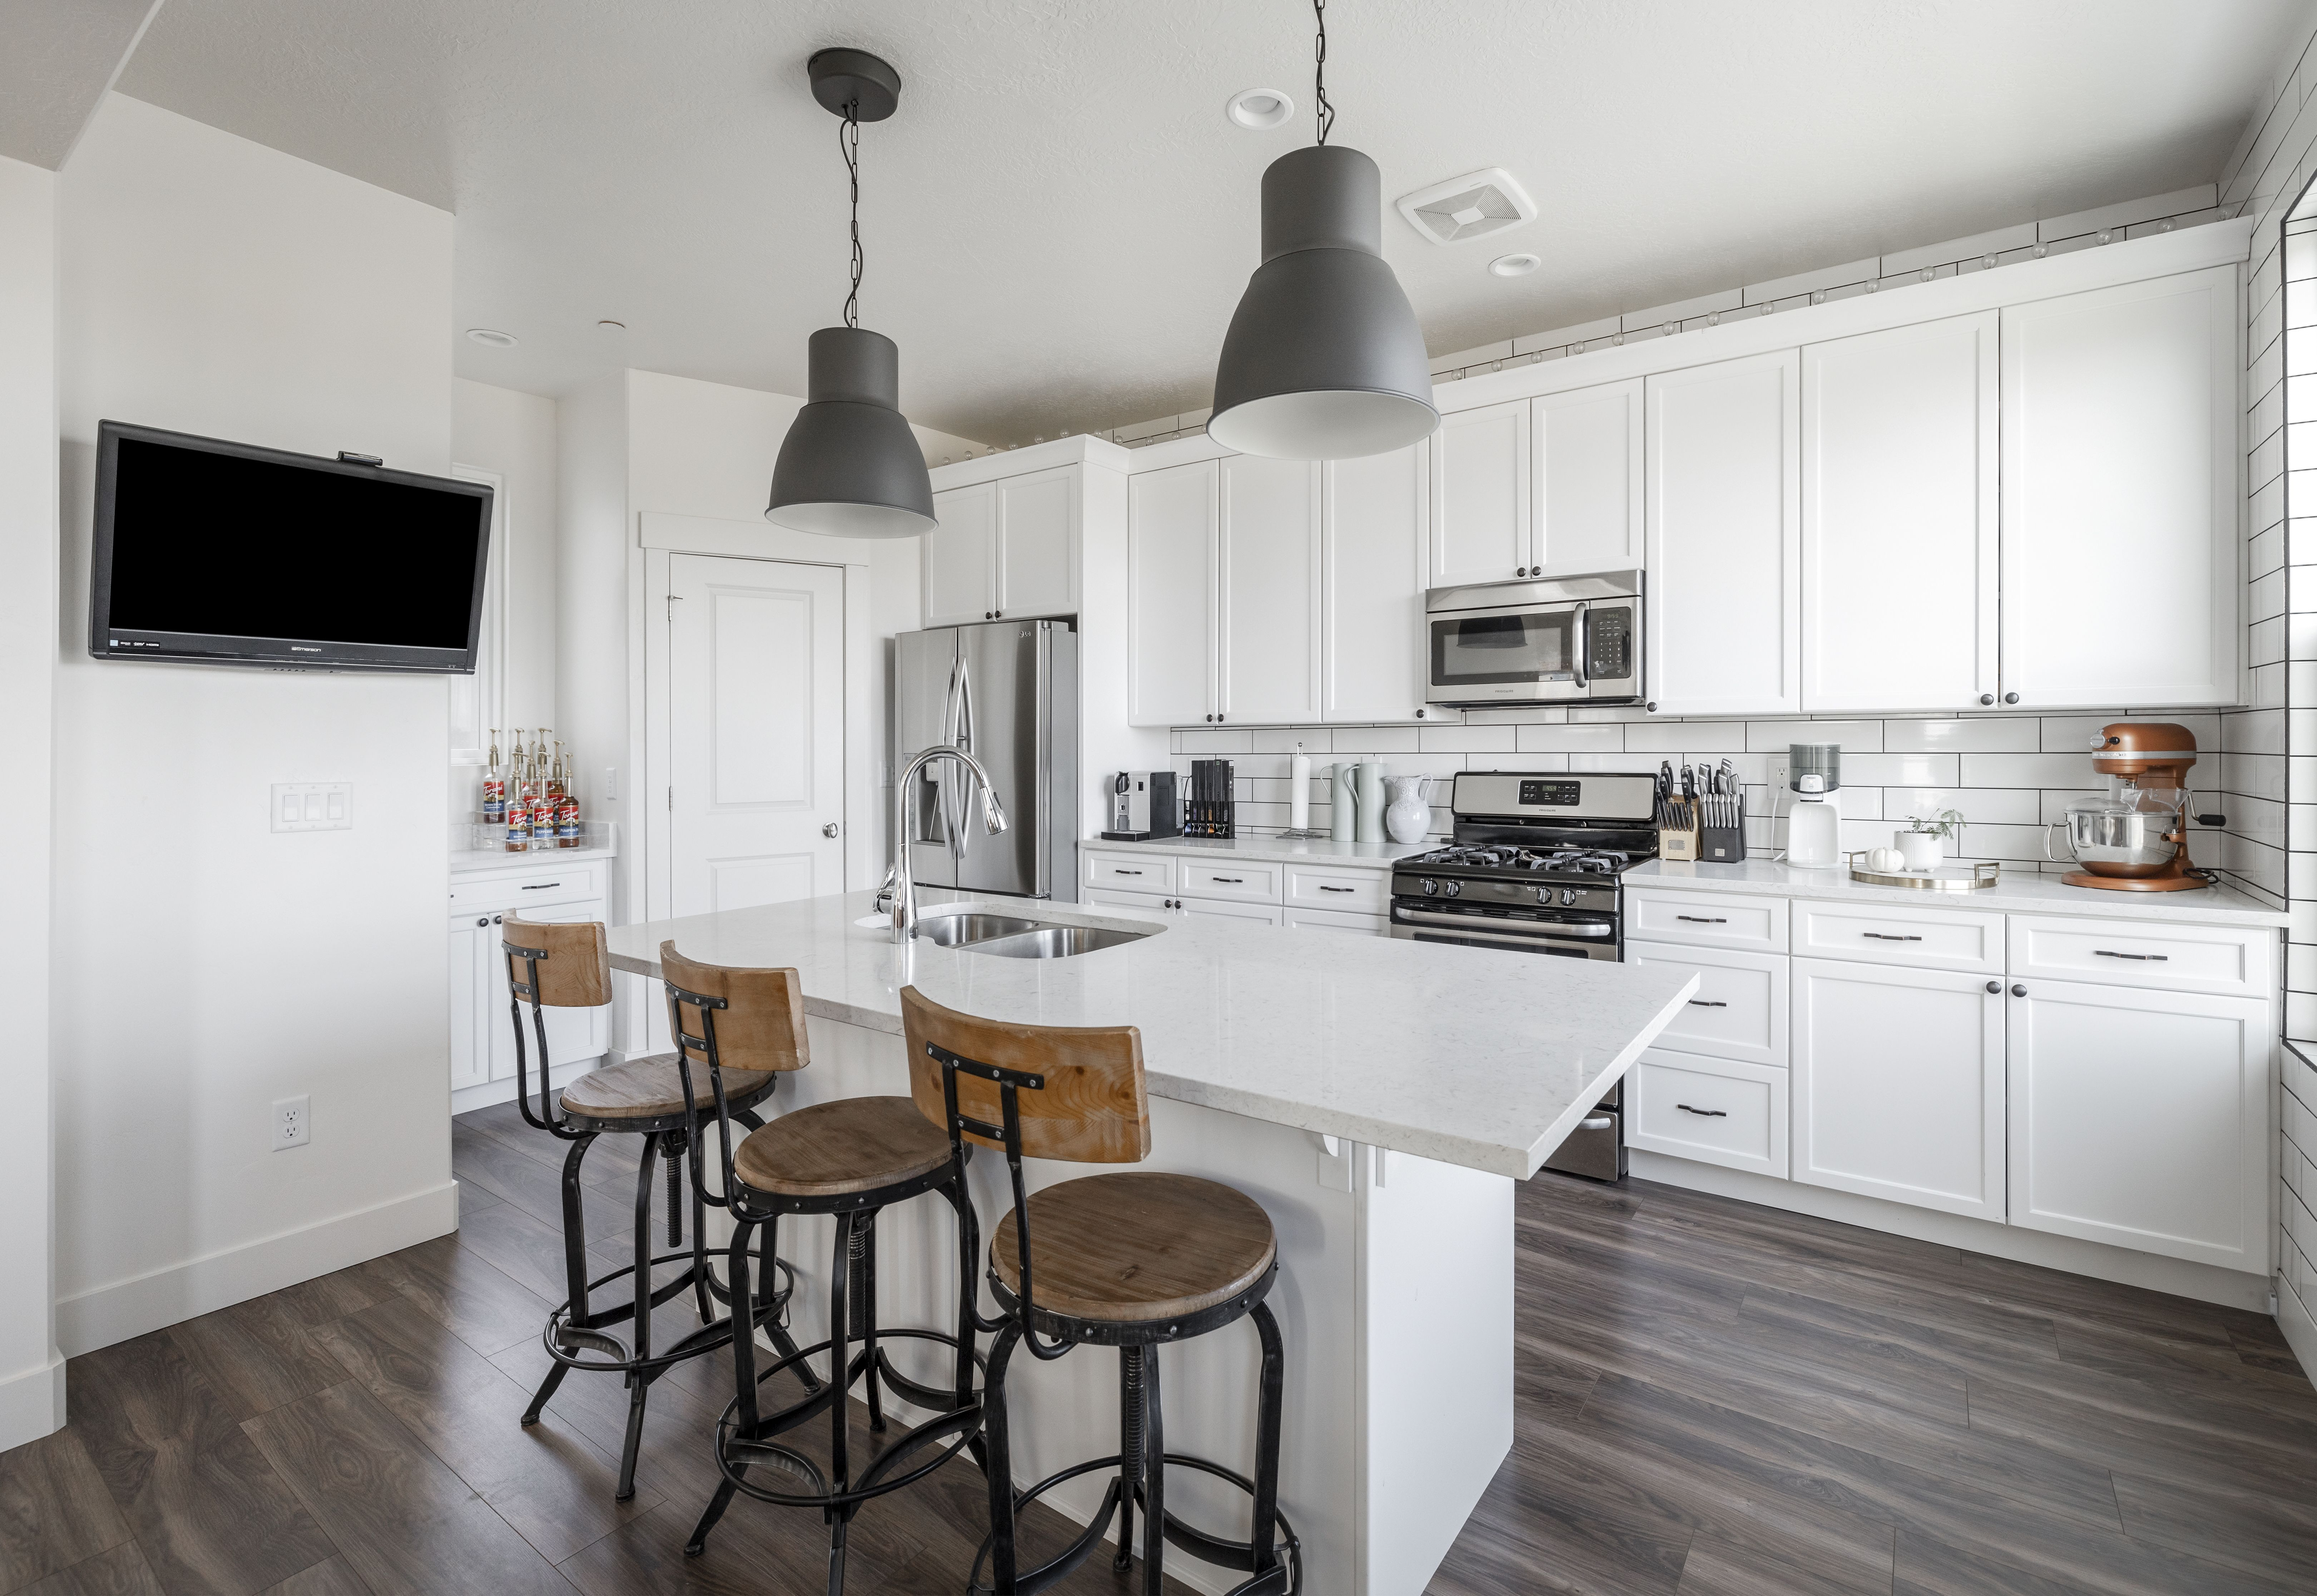 On the 1st level you will find the beautiful modern kitchen, that is brilliantly designed with quartz countertops, stainless-steel appliances, tile backsplash and wall. #Kitchen #KitchenDesign #KitchenDecor #HomeDecor #HomeDesign #DiningRoomDecor #Minimal #Bohemian #LightingDesign #Modern #WindermereUtah #RealEstate #HomesForSale #UtahHomes #DreamKitchen #KitchenGoals #Modern #ModernIndustrial